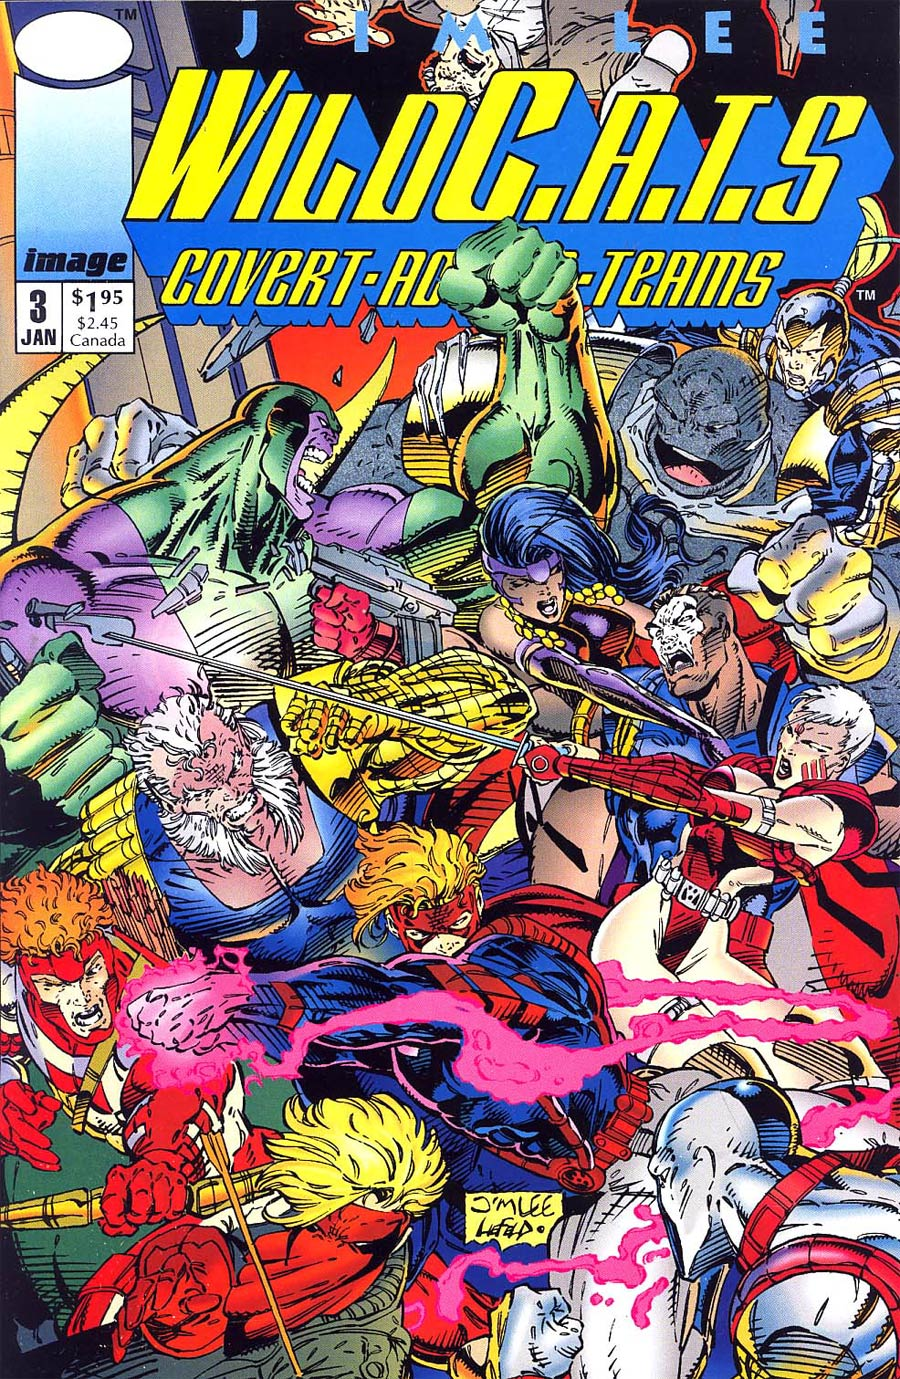 WildC.A.T.s 3, January 1993